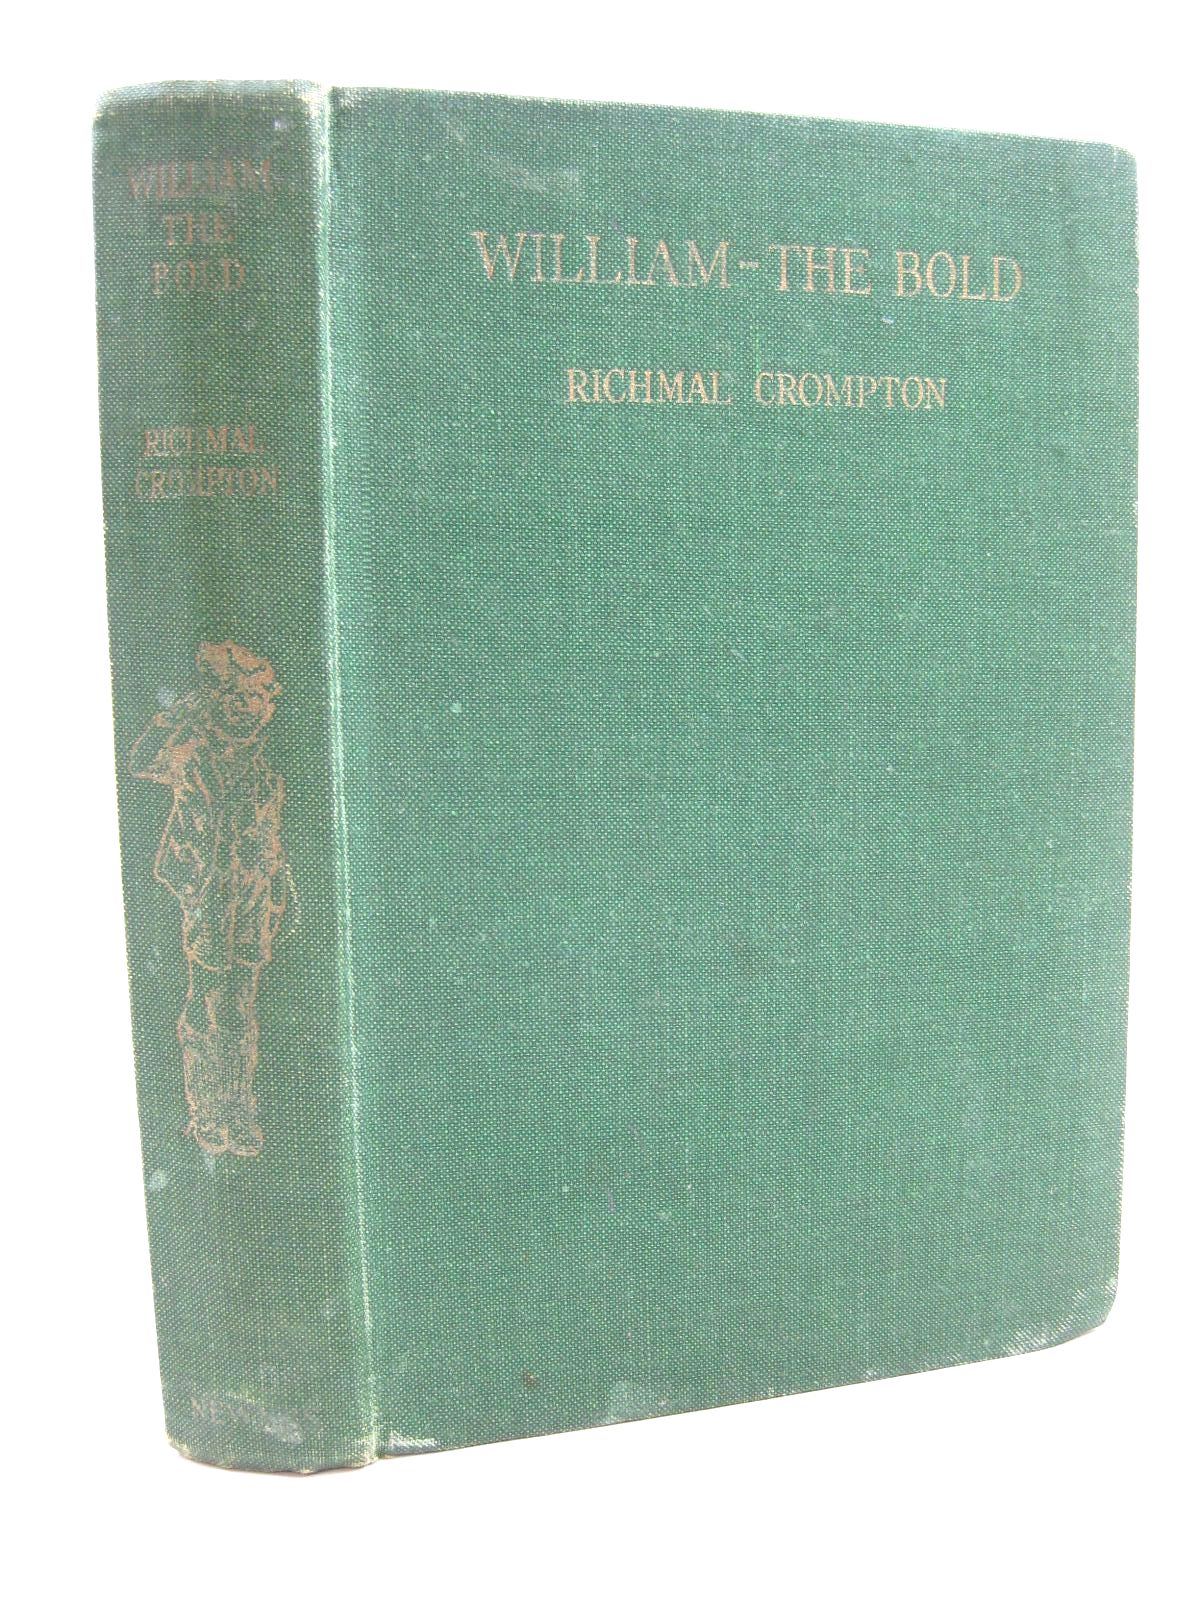 Photo of WILLIAM THE BOLD written by Crompton, Richmal illustrated by Henry, Thomas published by George Newnes Limited (STOCK CODE: 1316618)  for sale by Stella & Rose's Books